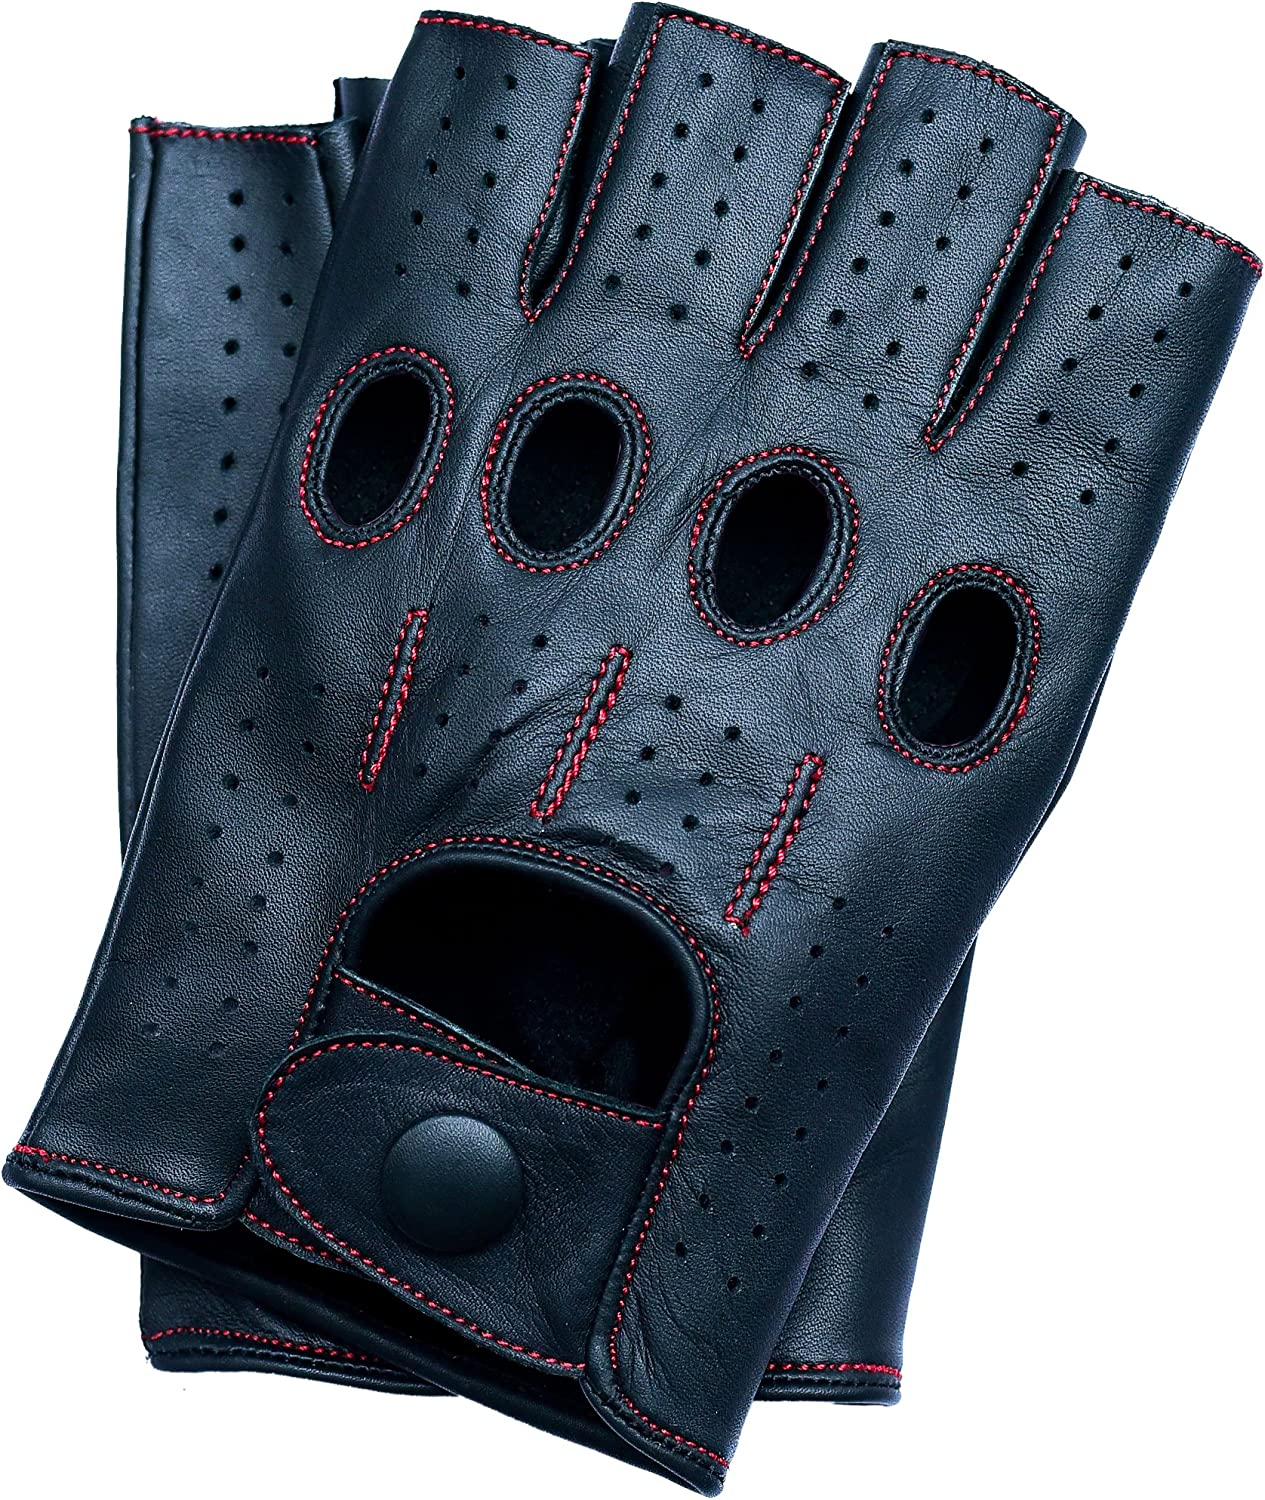 Riparo Motorsports Mens Fingerless Half Finger Driving Fitness Motorcycle Cycling Unlined Leather Gloves